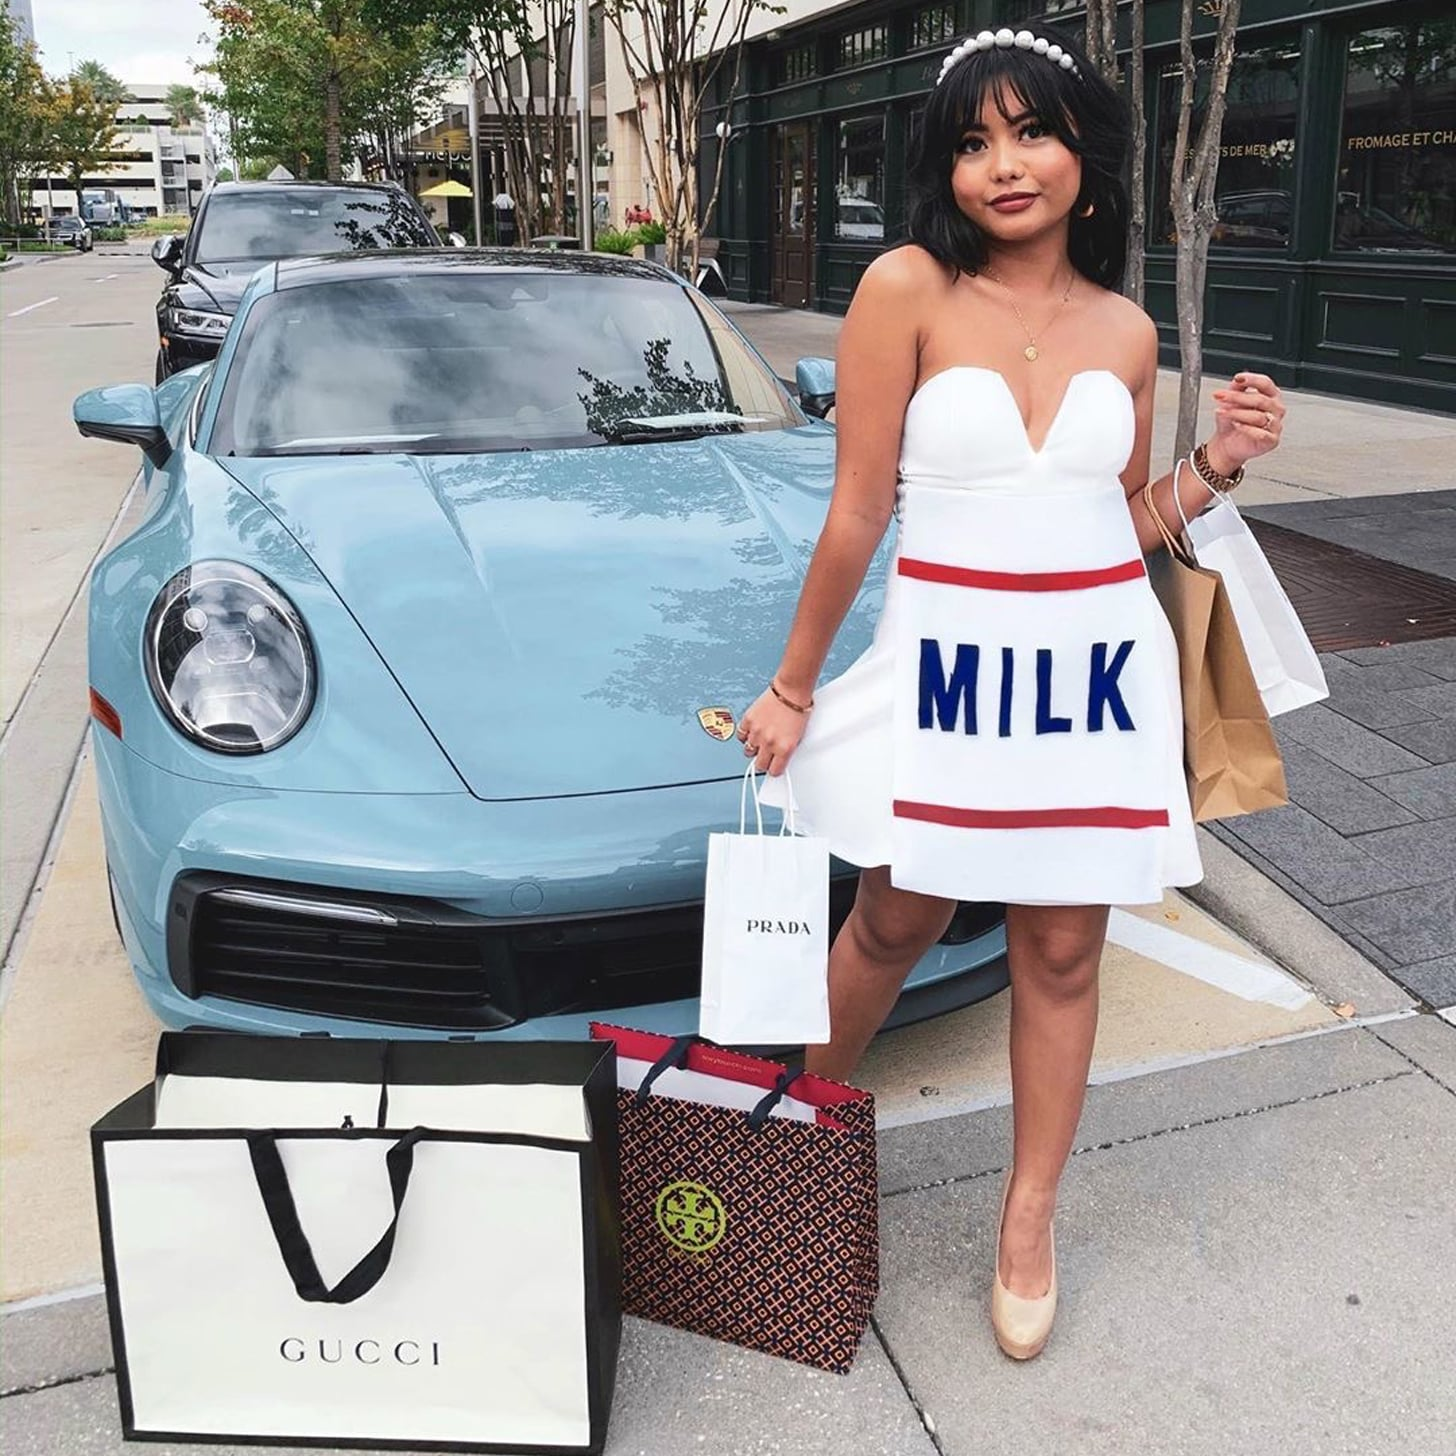 Play On Words Halloween Costumes 2020 Pun Halloween Costumes That Are Seriously Funny | 2020 | POPSUGAR